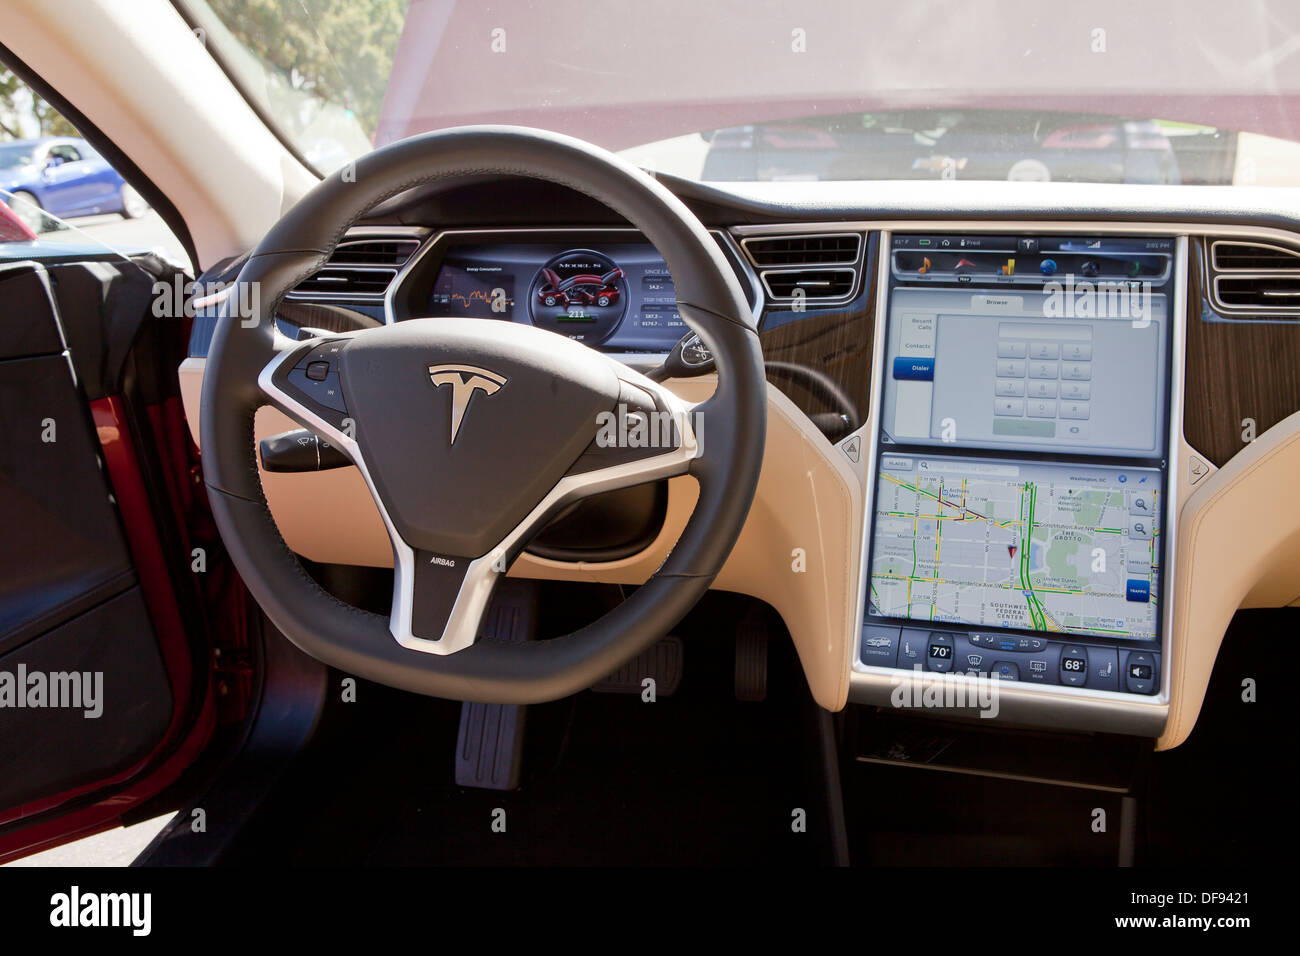 tesla model s electric car interior stock photo 61051705 alamy. Black Bedroom Furniture Sets. Home Design Ideas